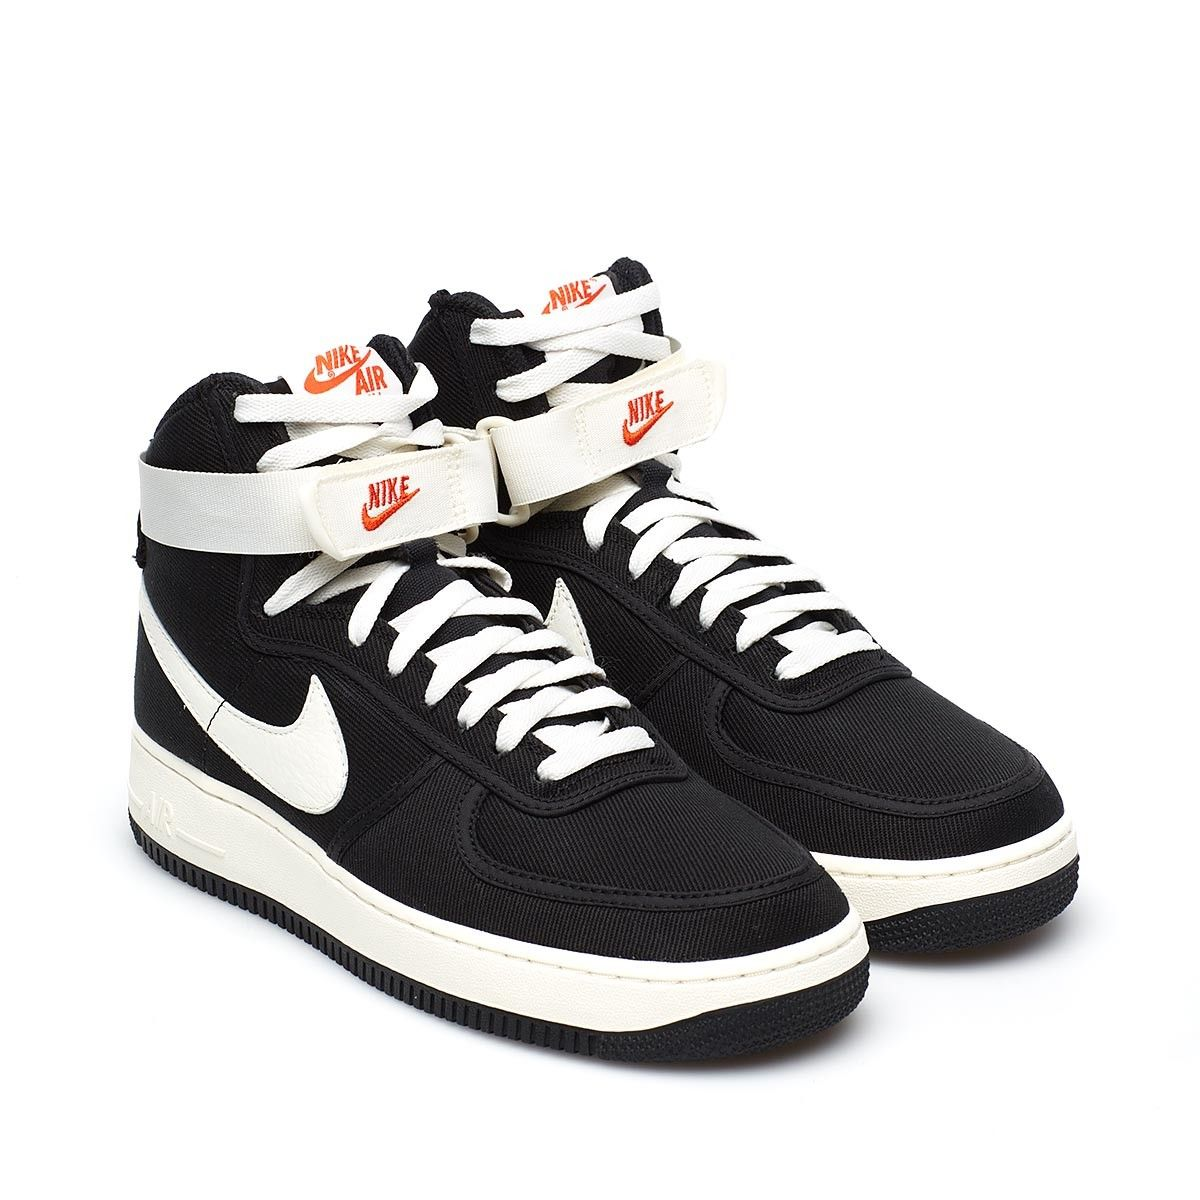 7a1616b186e8 Nike Air Force 1 High Retro from the Summer  16 collection in black